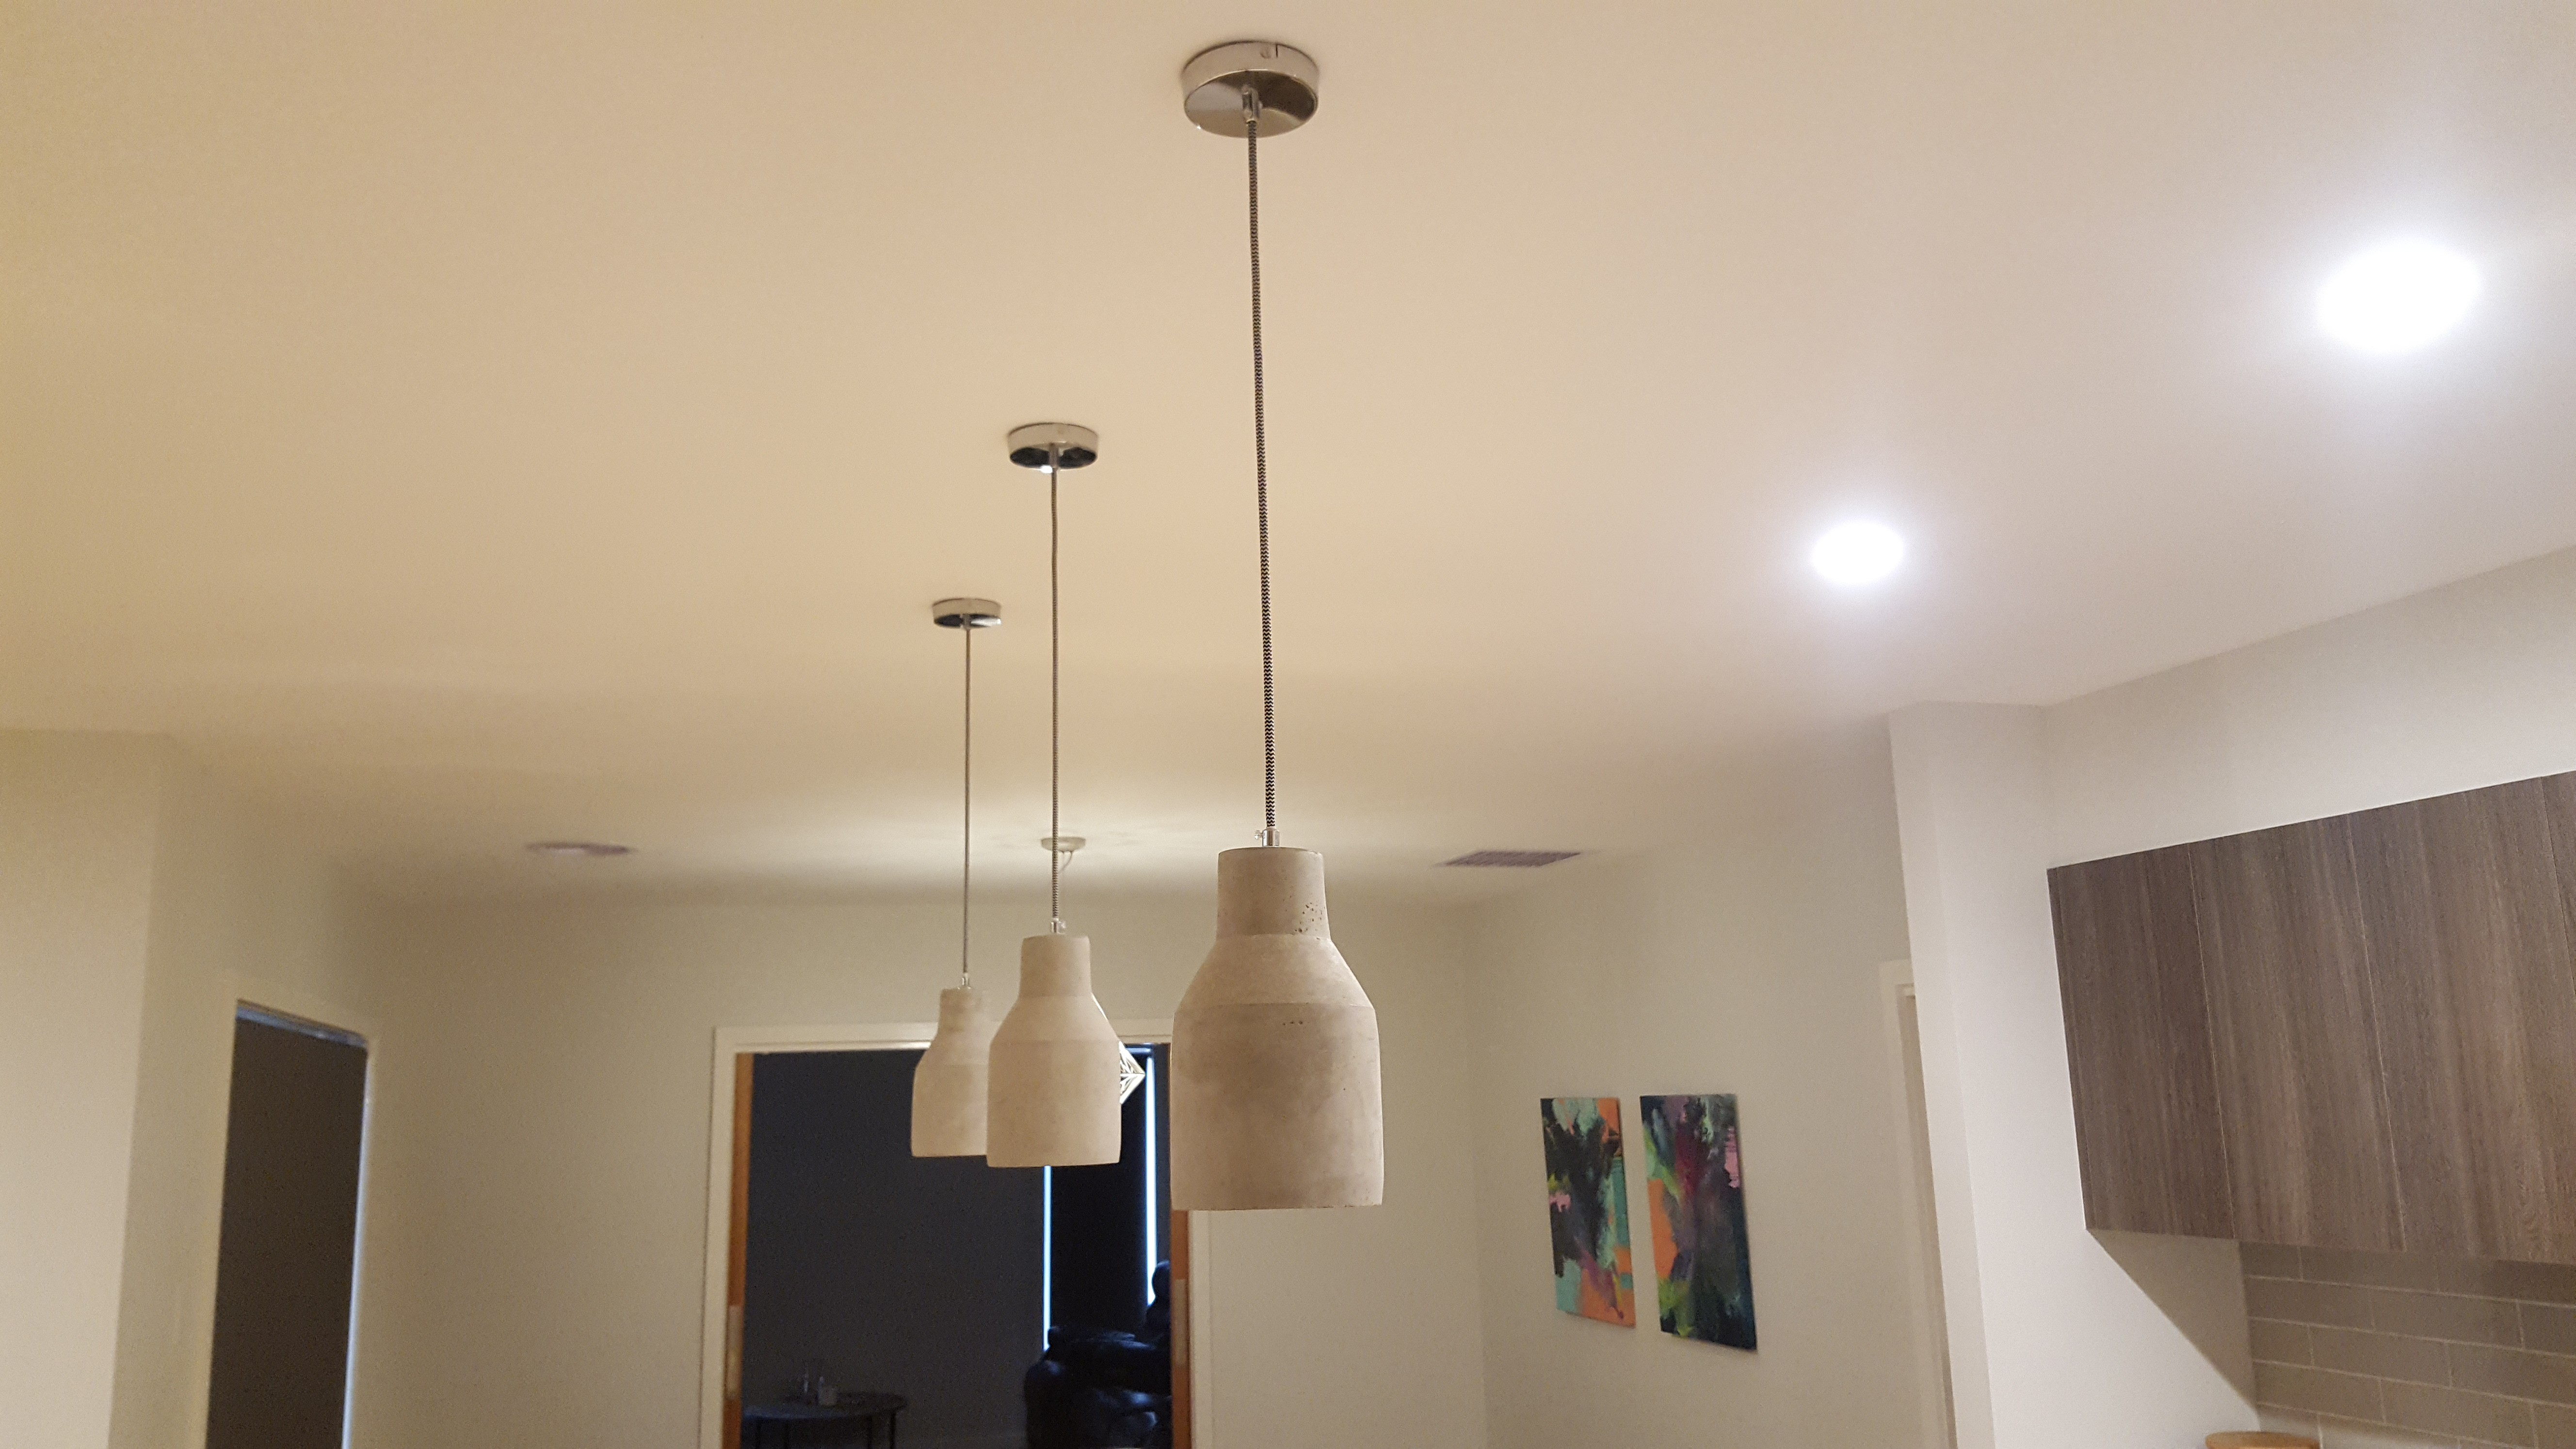 Suspended lighting